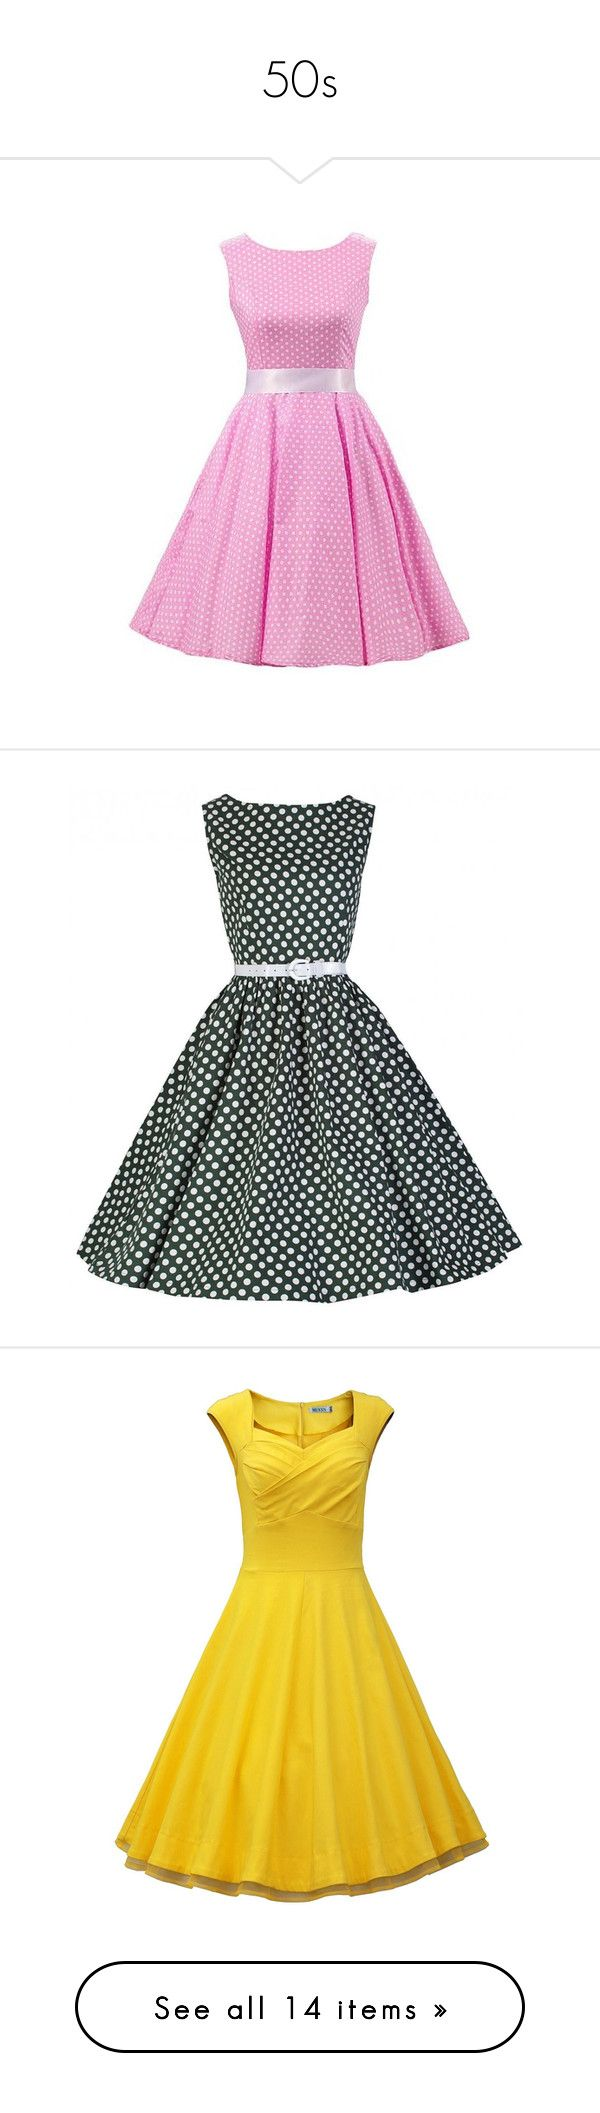 """""""50s"""" by queen-anna24 ❤ liked on Polyvore featuring dresses, short pink dress, white mini dress, short dresses, white sleeveless dress, short white dresses, green, vintage day dress, polka dot skater skirt and tent dress"""